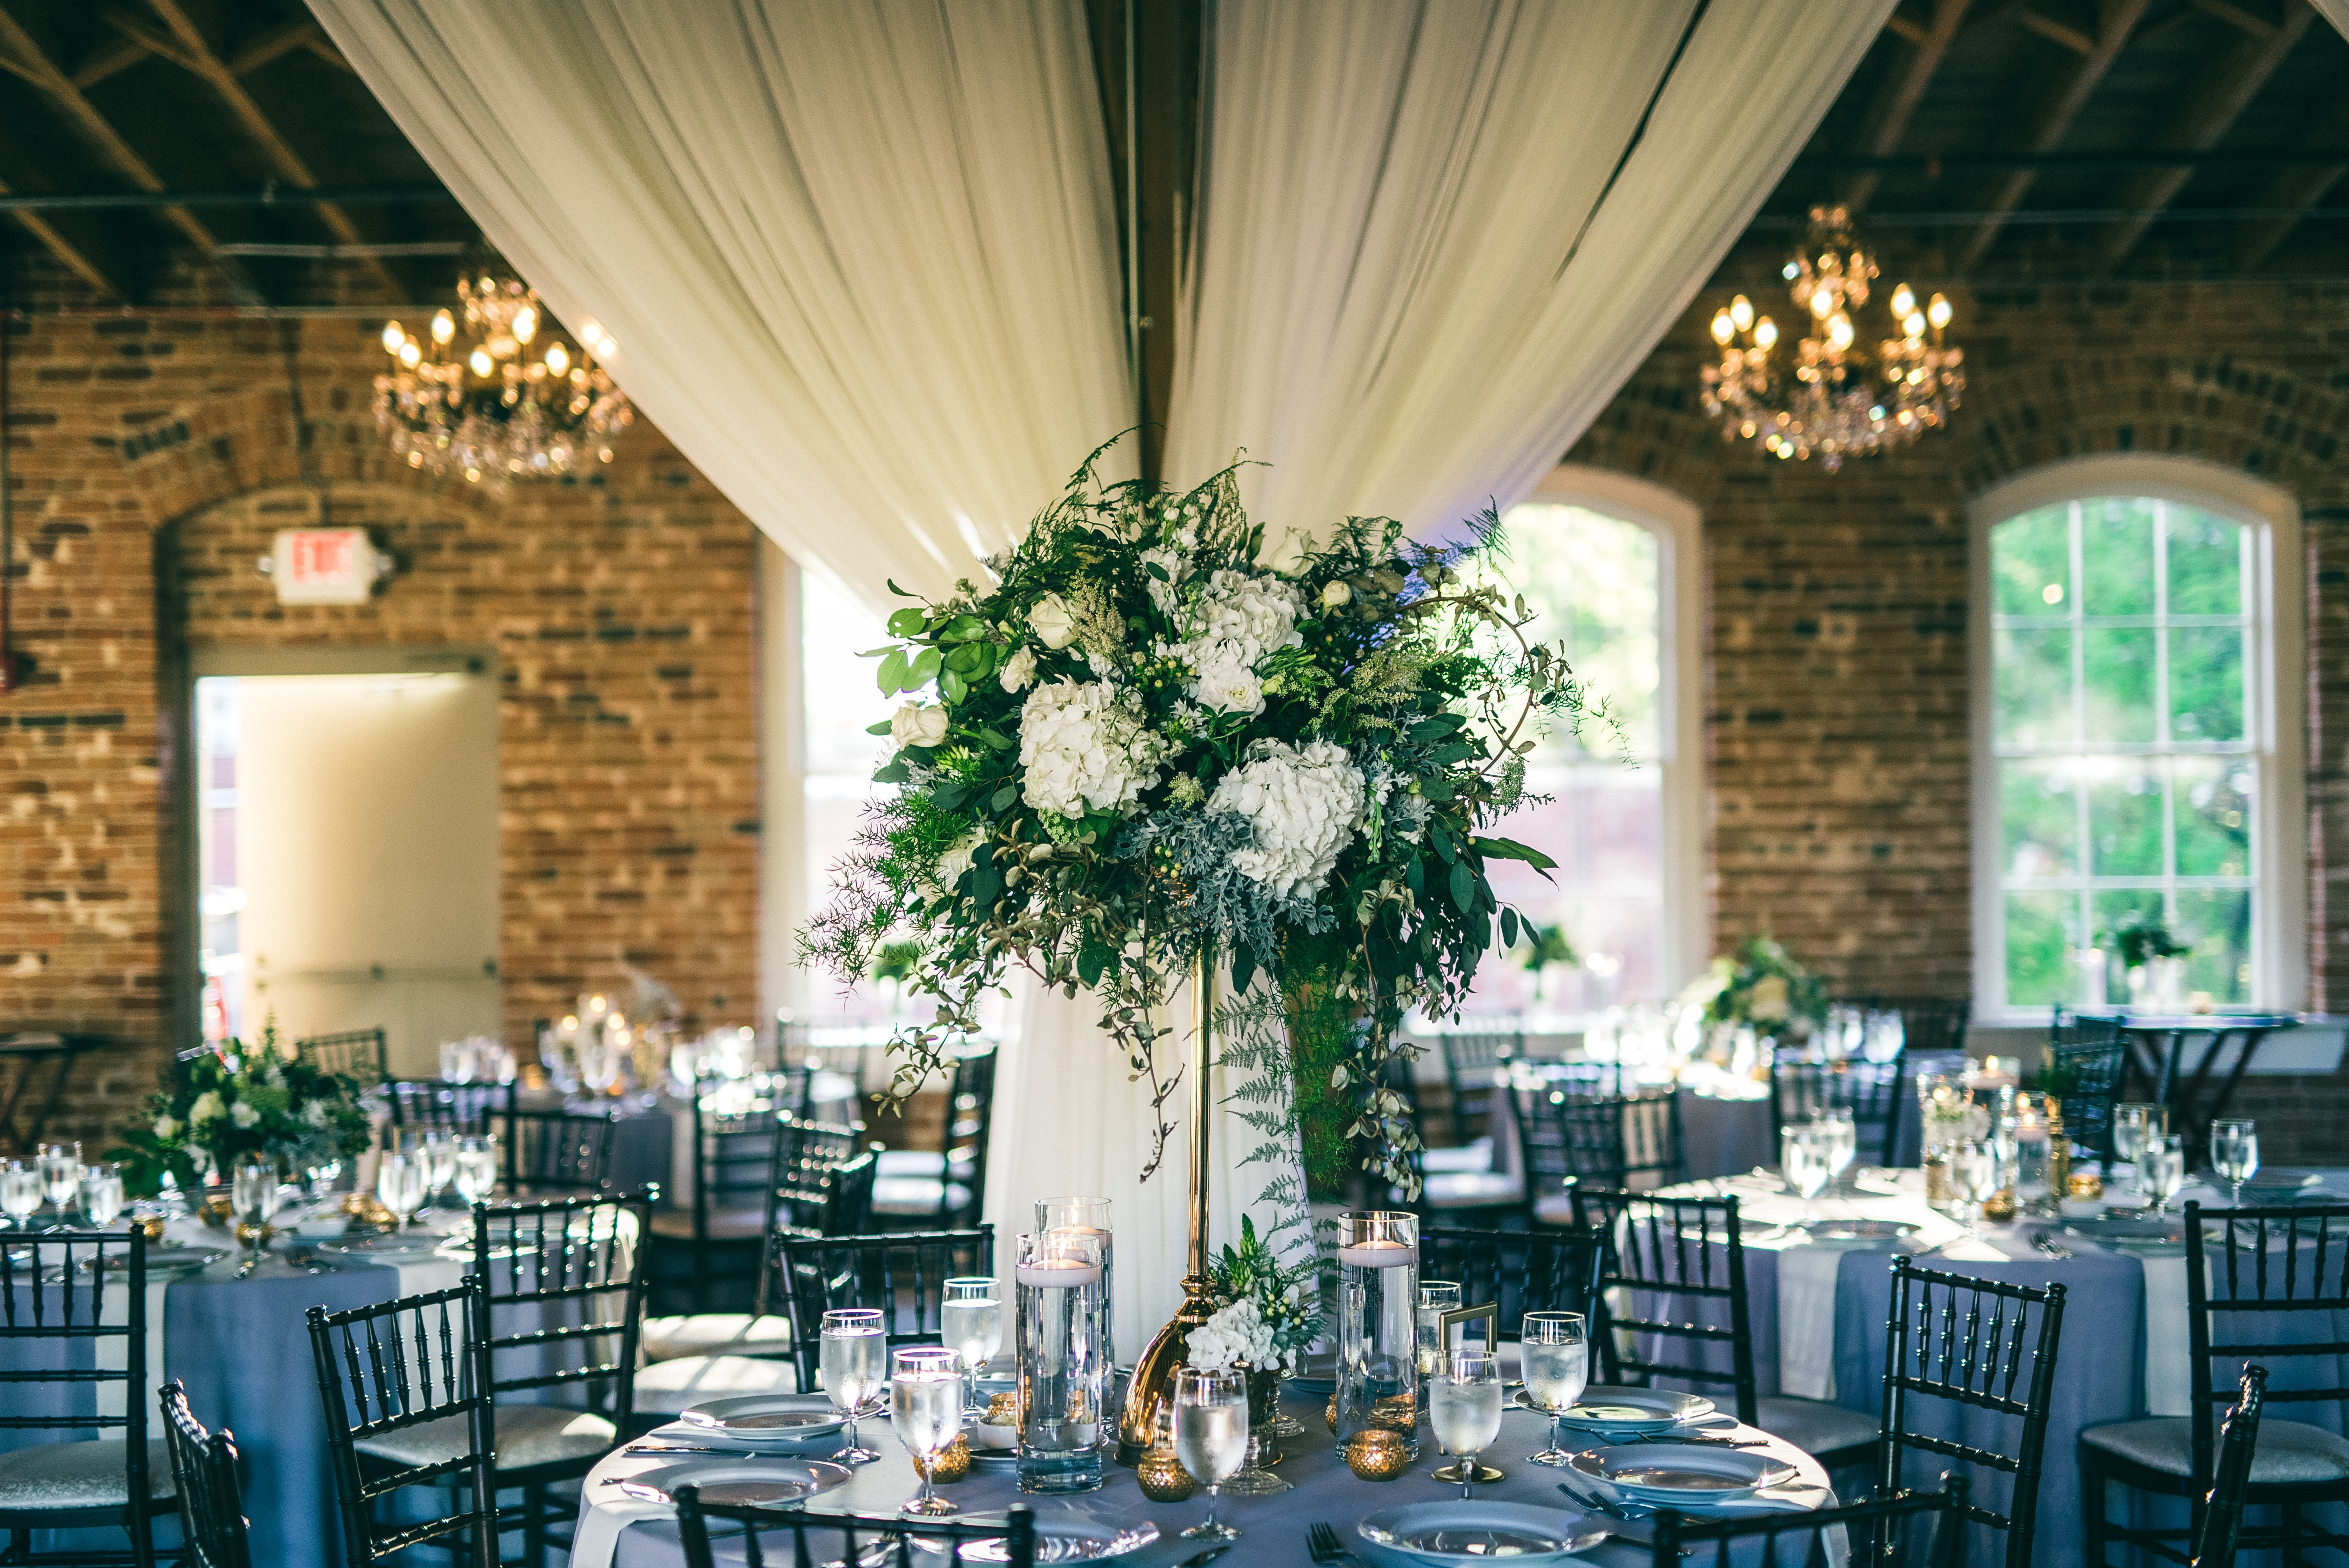 Frosty Florals: Flowers That Can Stand the Cold for Your Winter Event